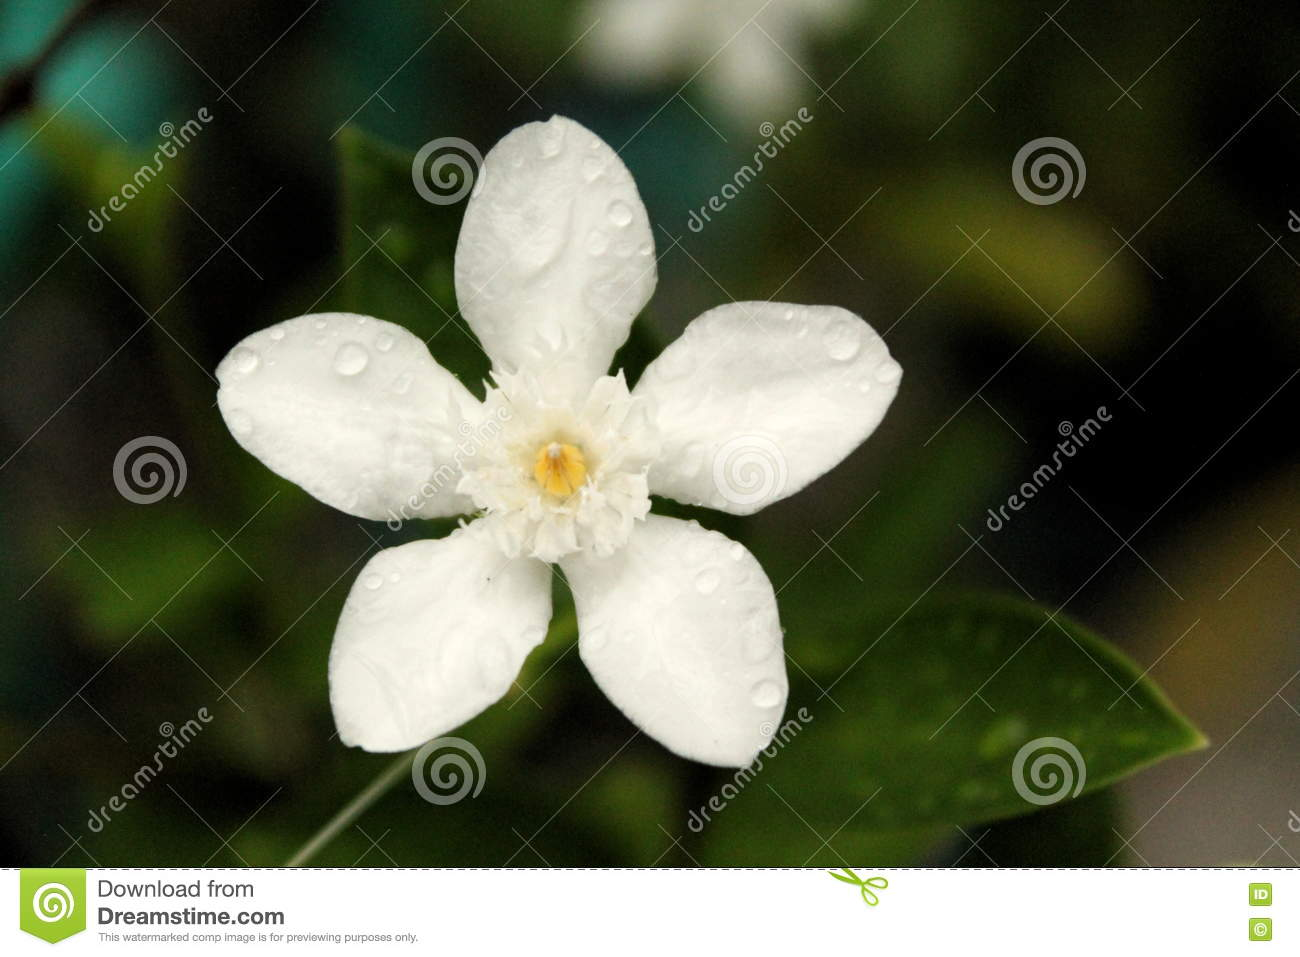 sampaguita flower  flower, Natural flower